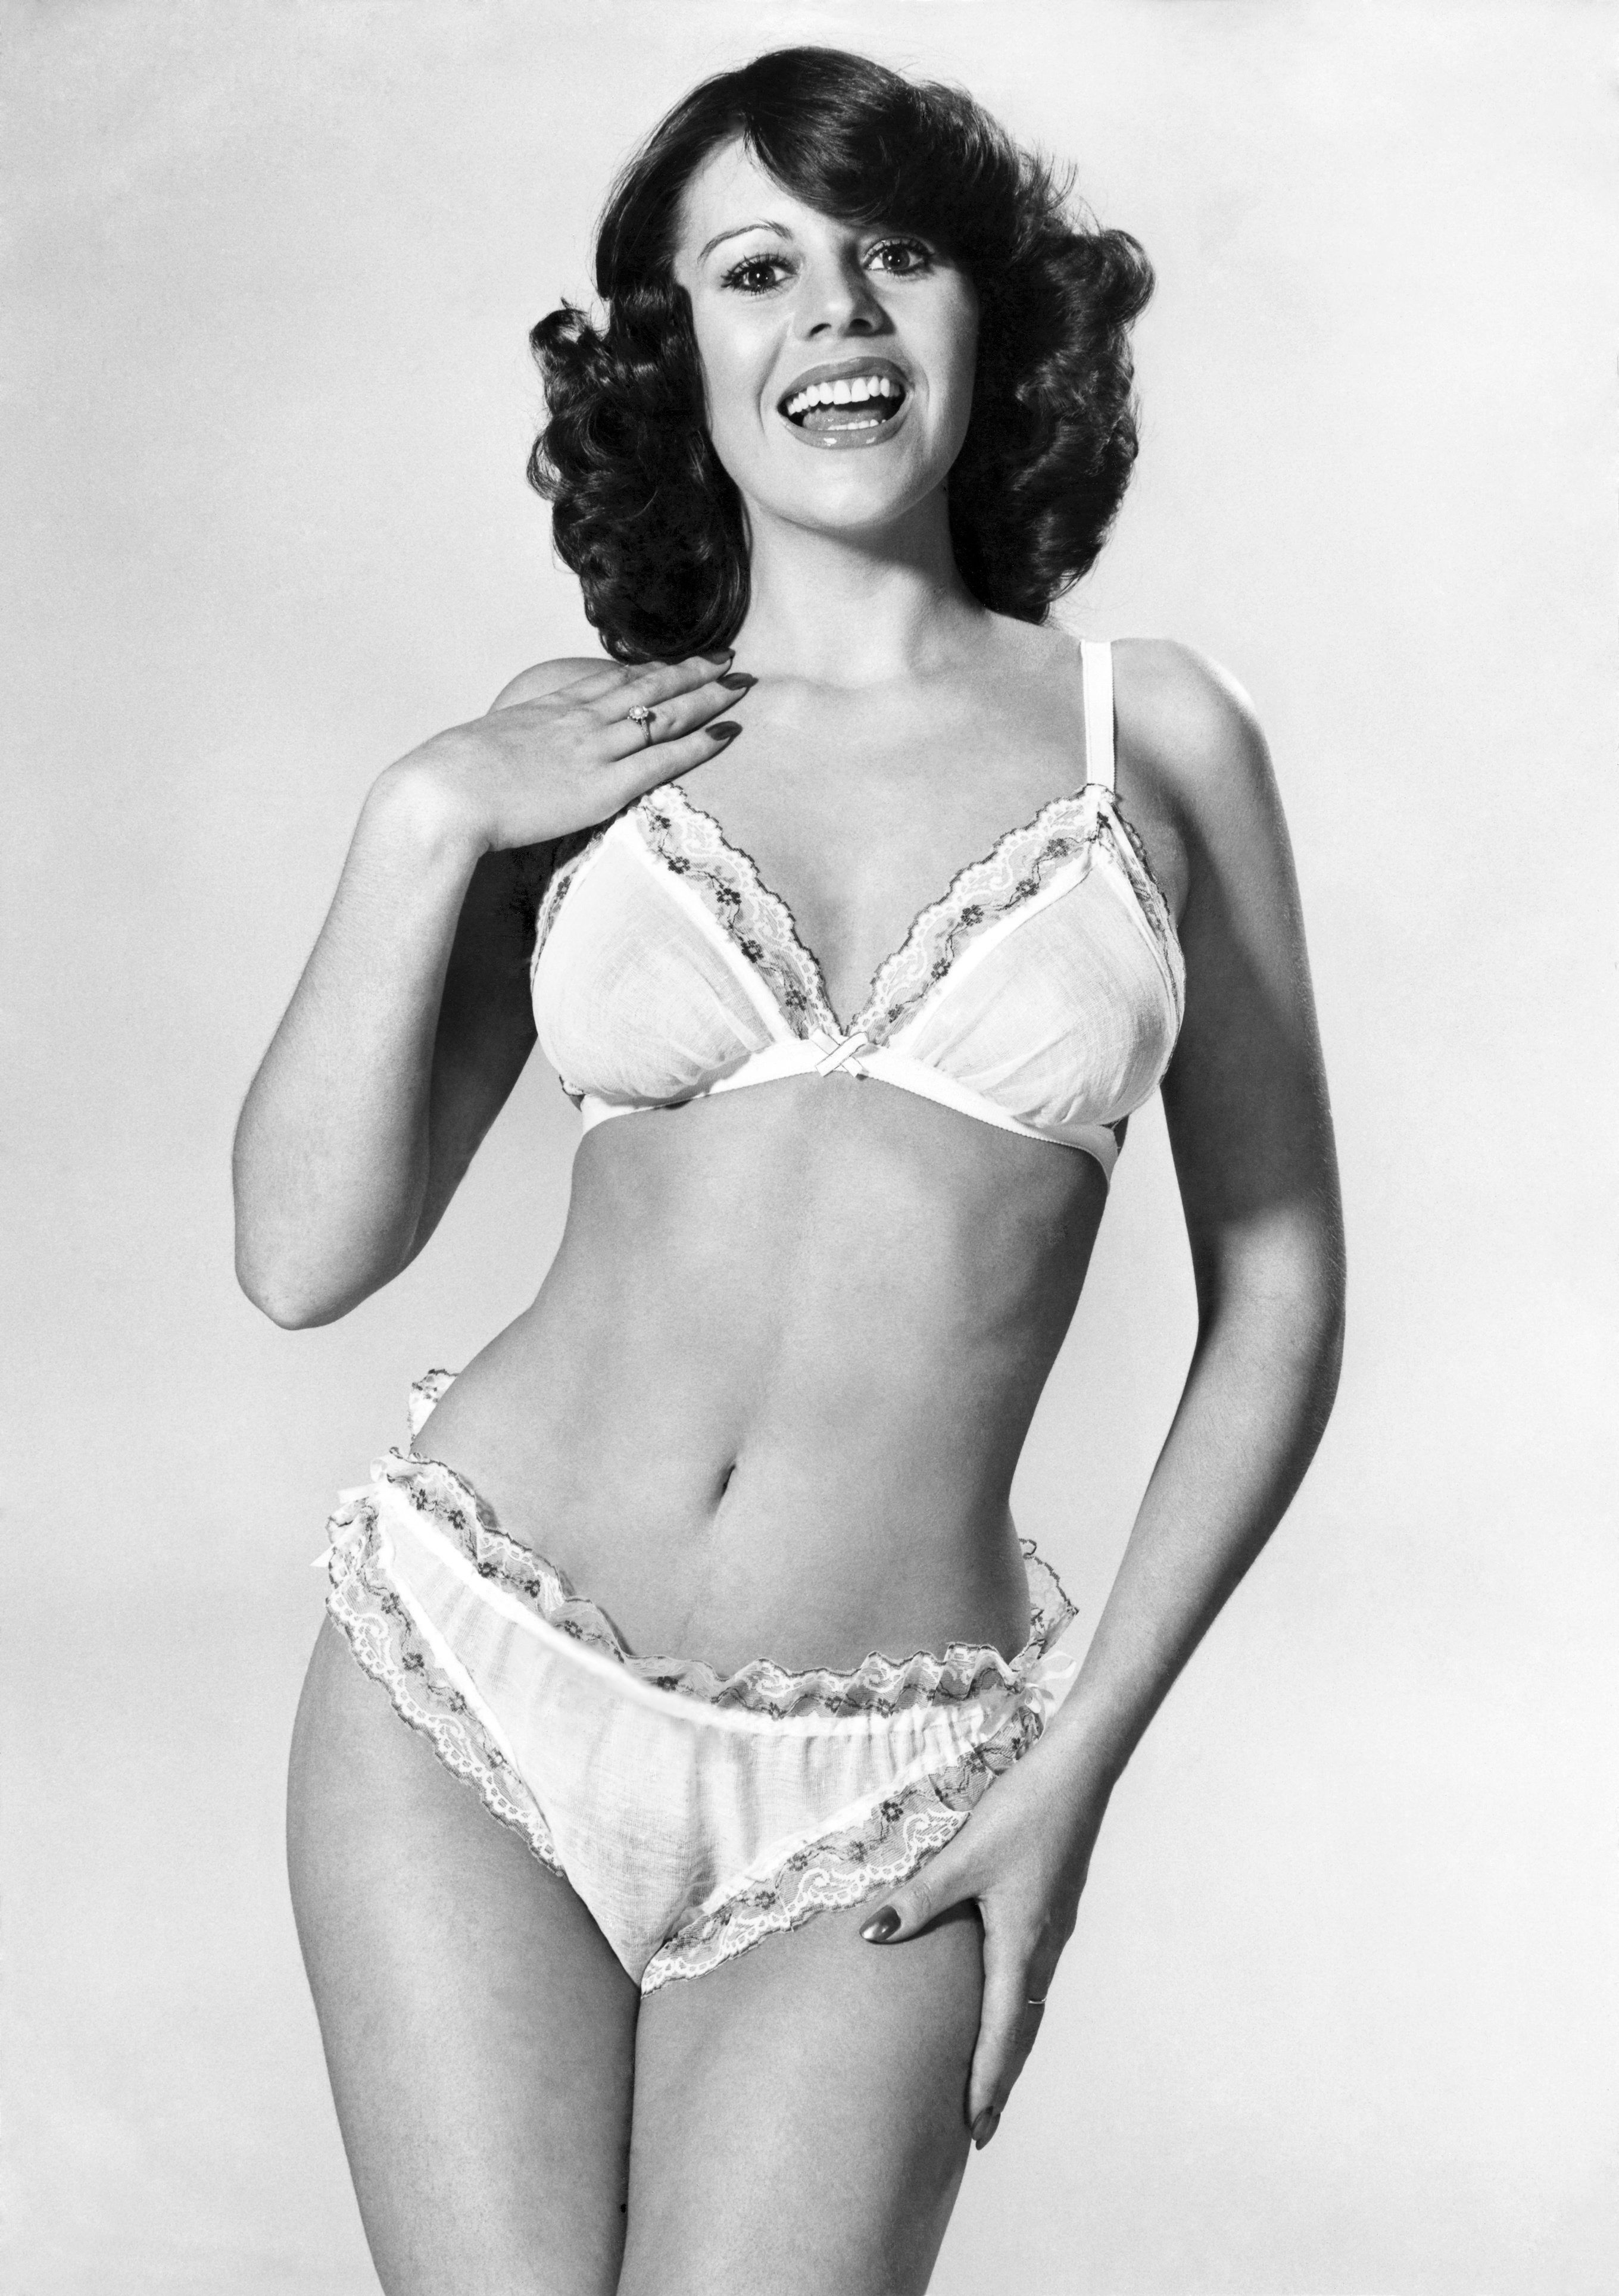 56519d75ce226 The Surprising Evolution of Lingerie — How Lingerie Has Changed Through the  Years